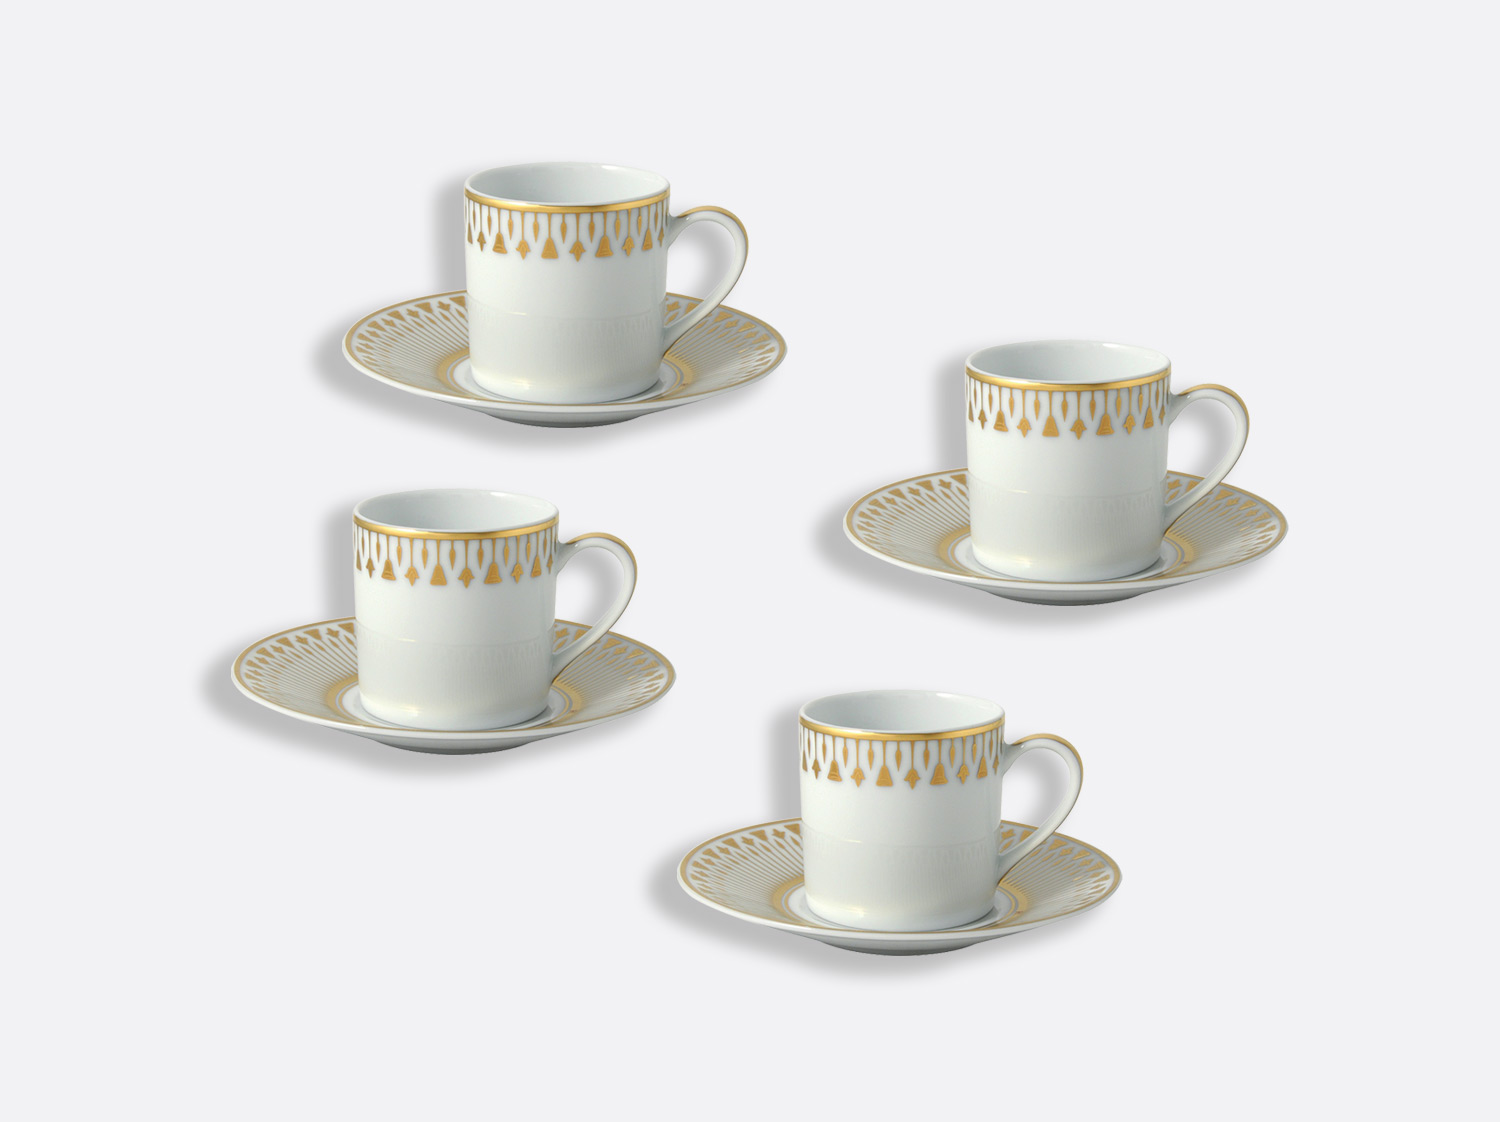 China Espresso cup and saucer gift box - 8 cl - Set of 4 of the collection Soleil levant | Bernardaud